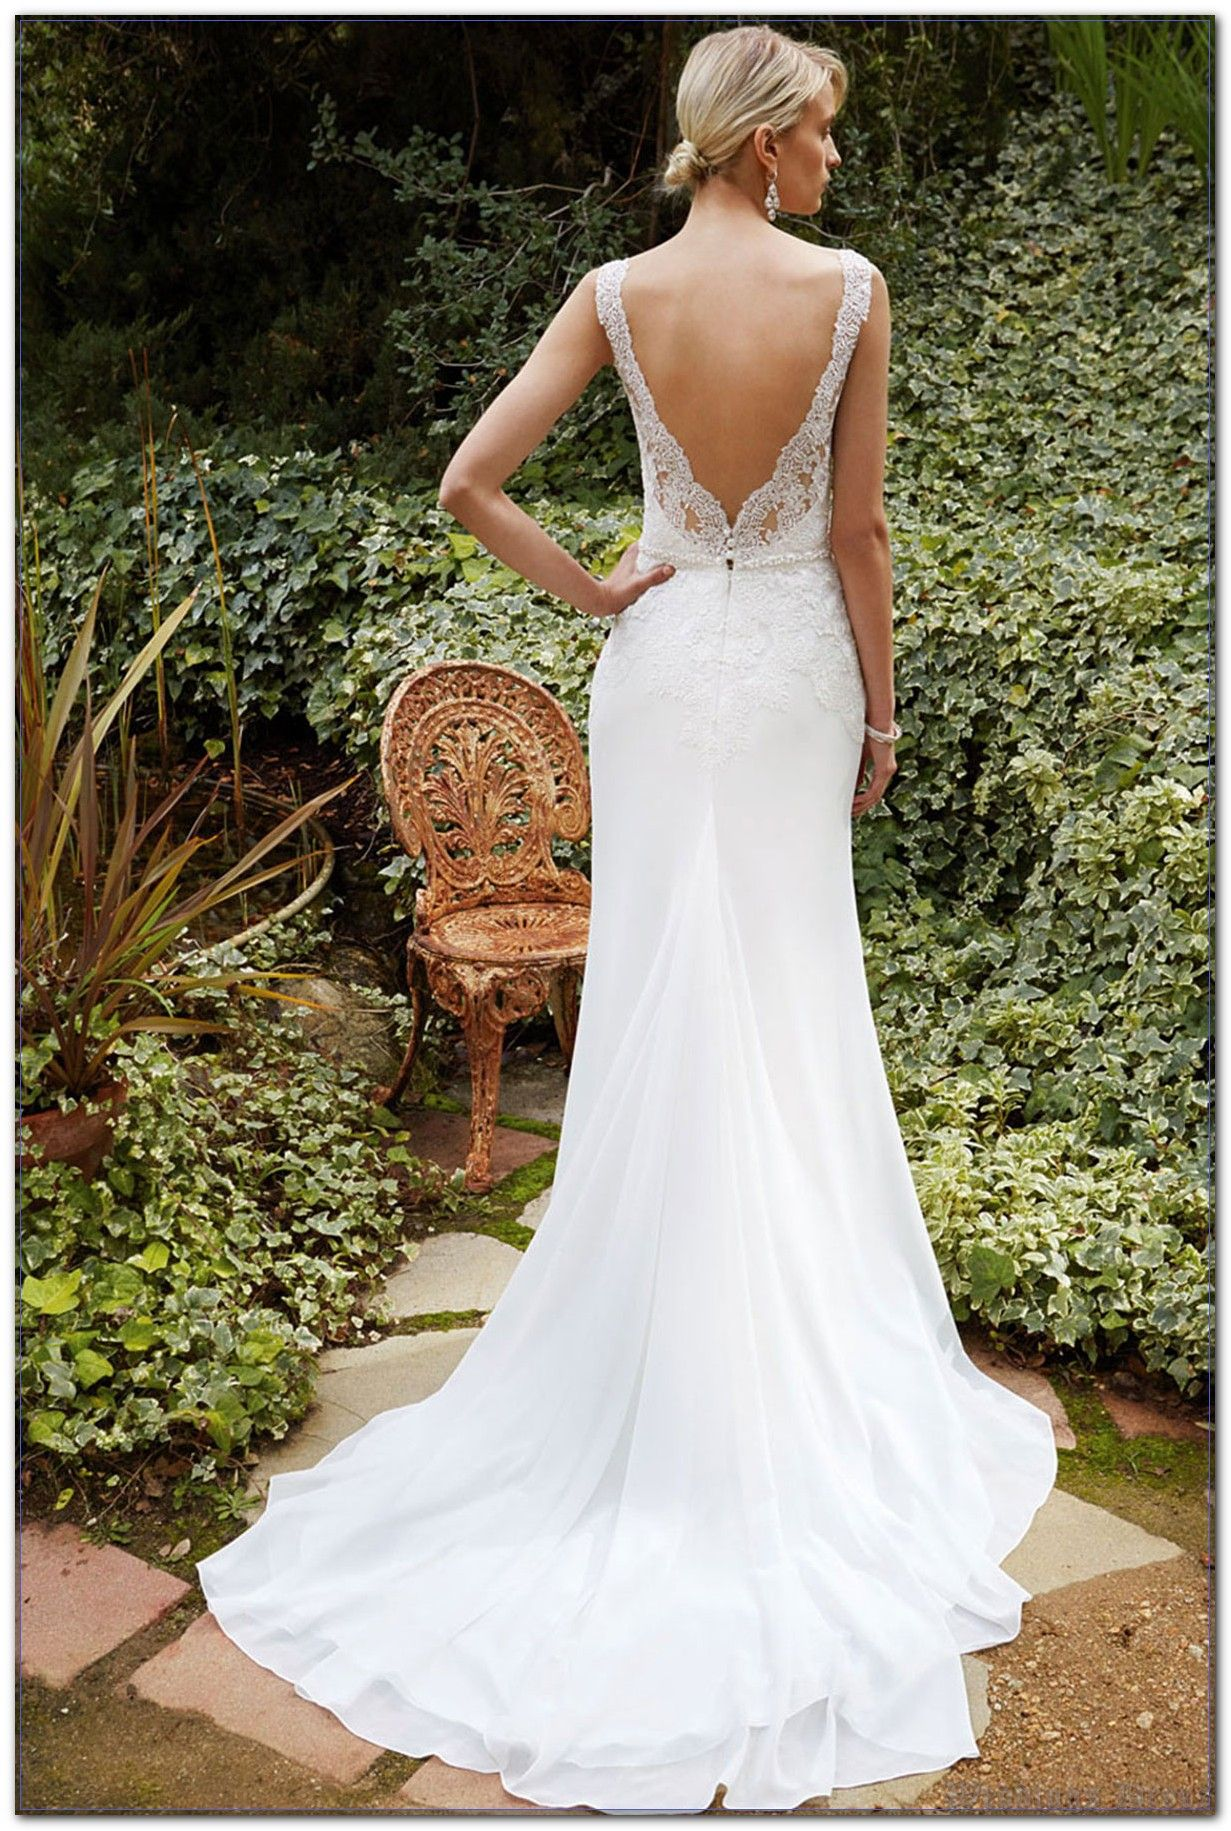 How To Save Money with Weddings Dress?